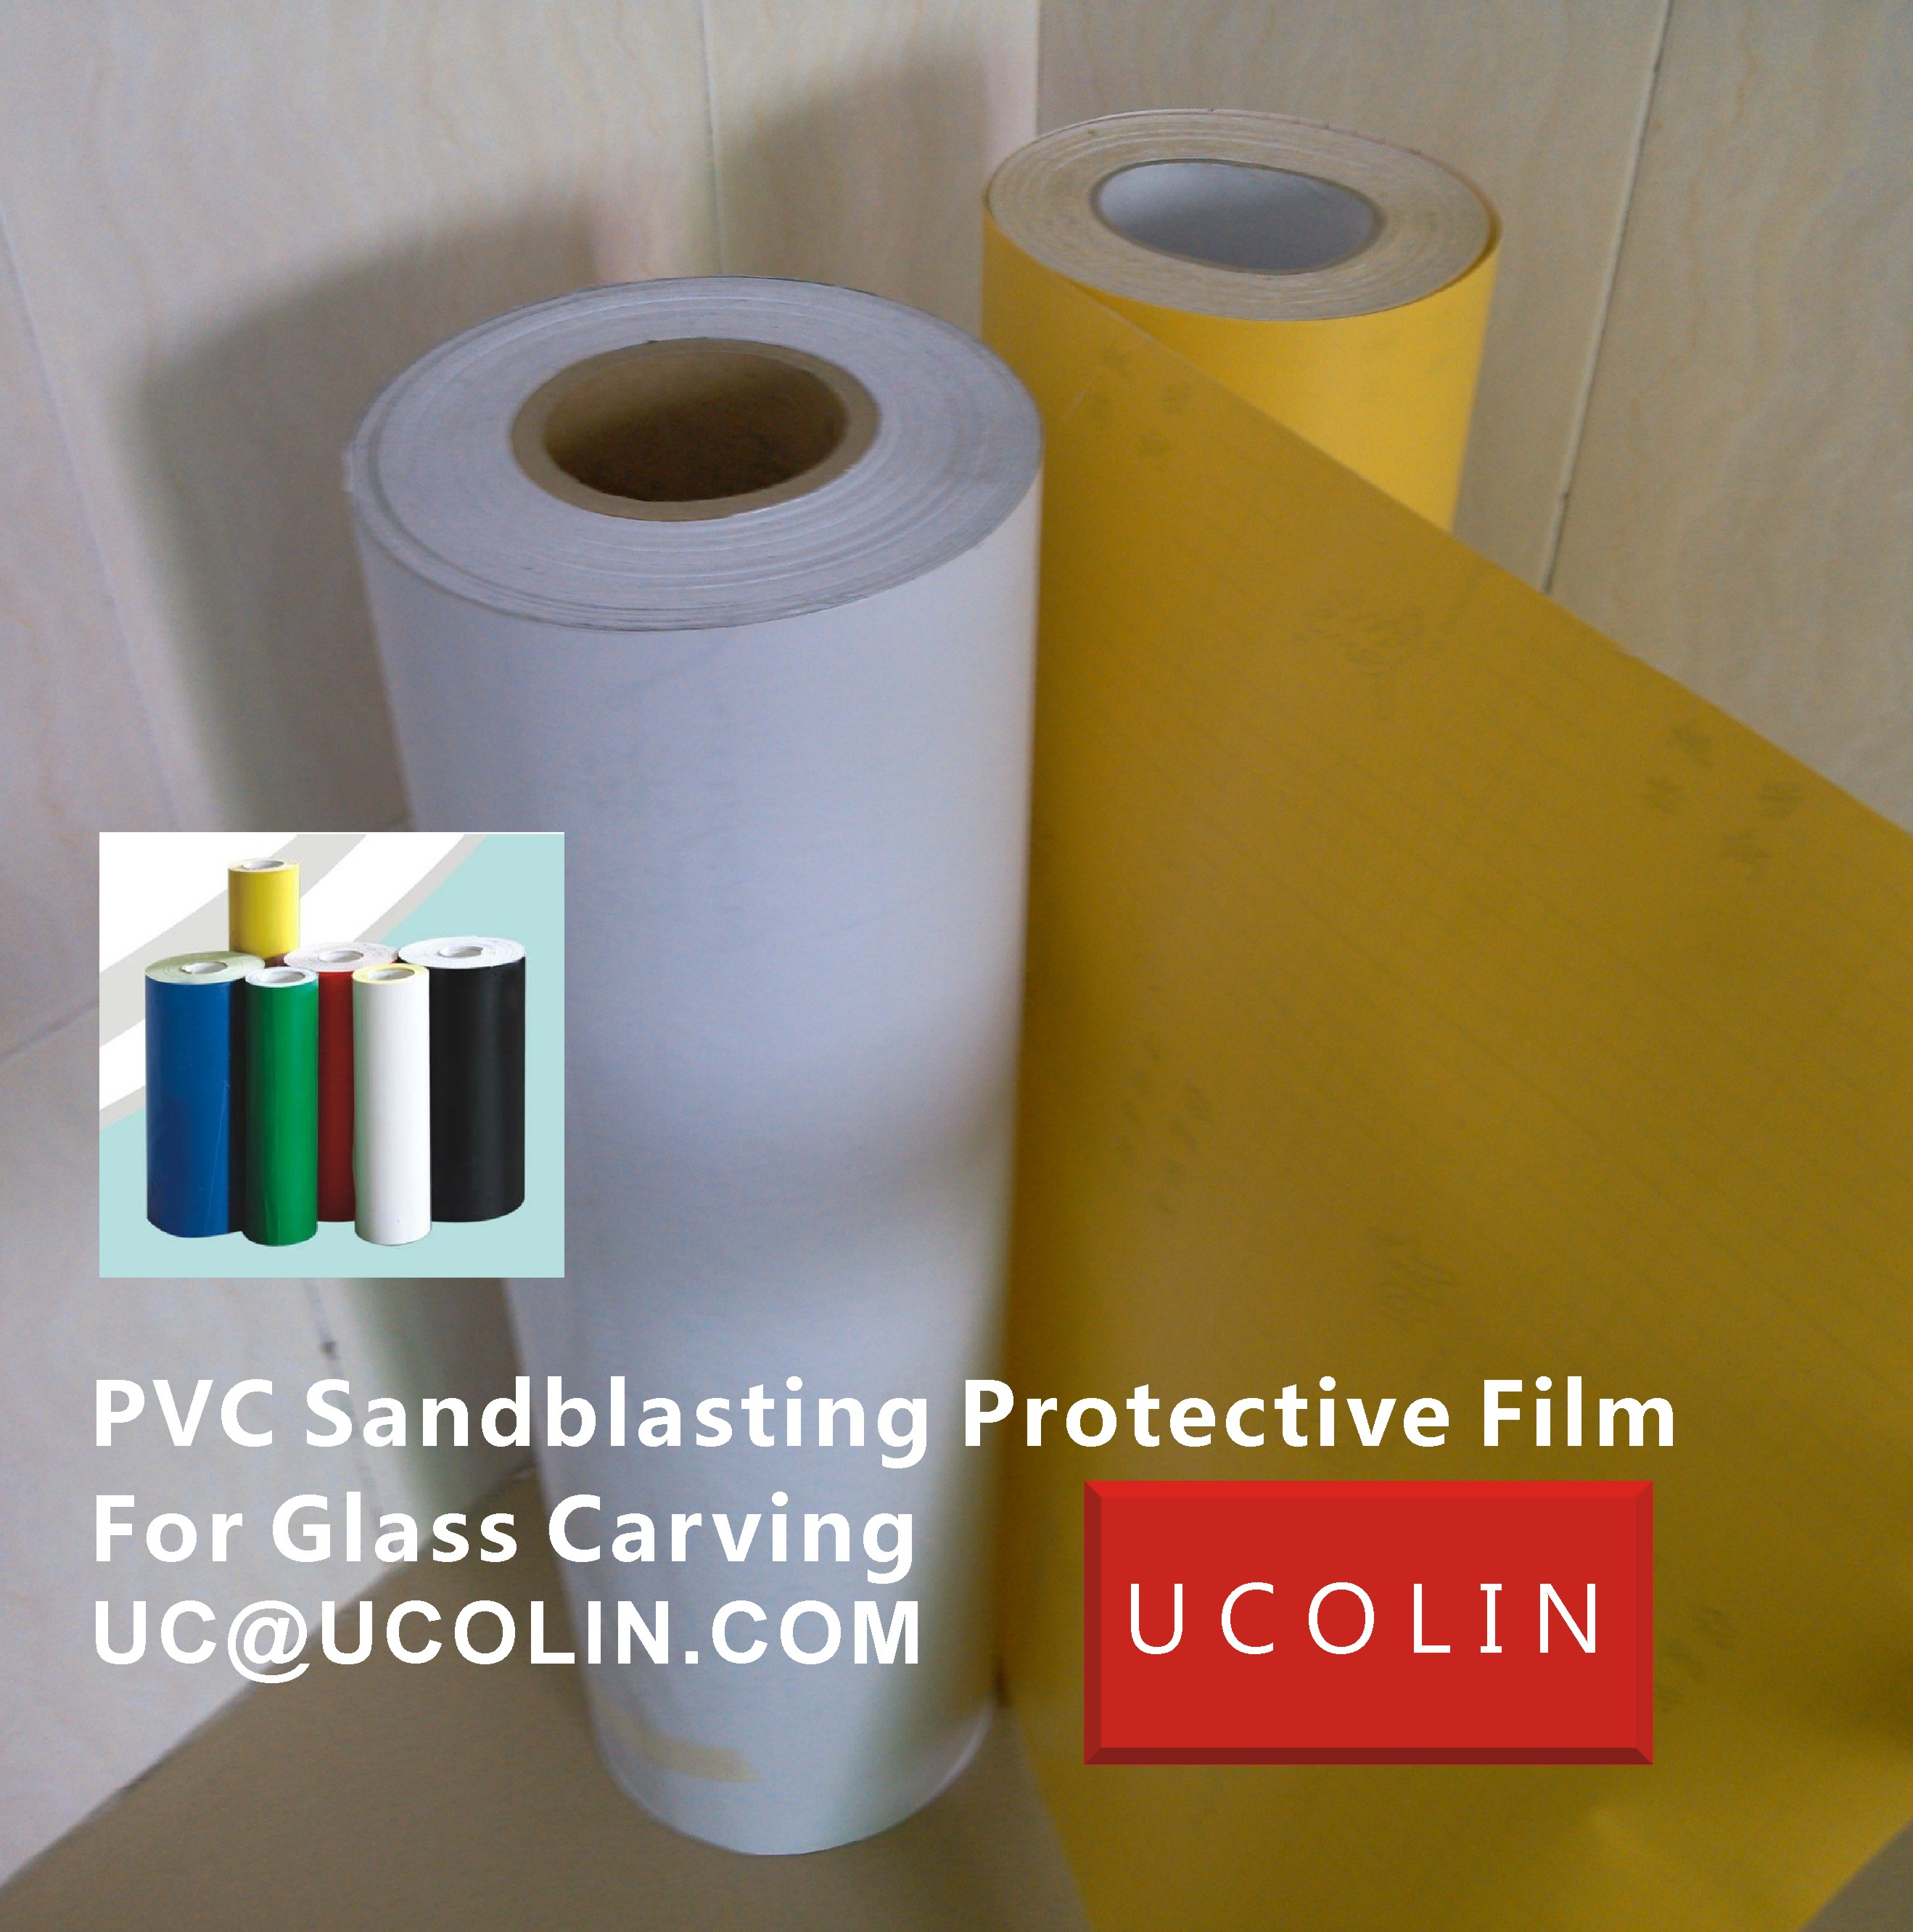 02 PVC Sandblasting Protective Film For Glass Carving